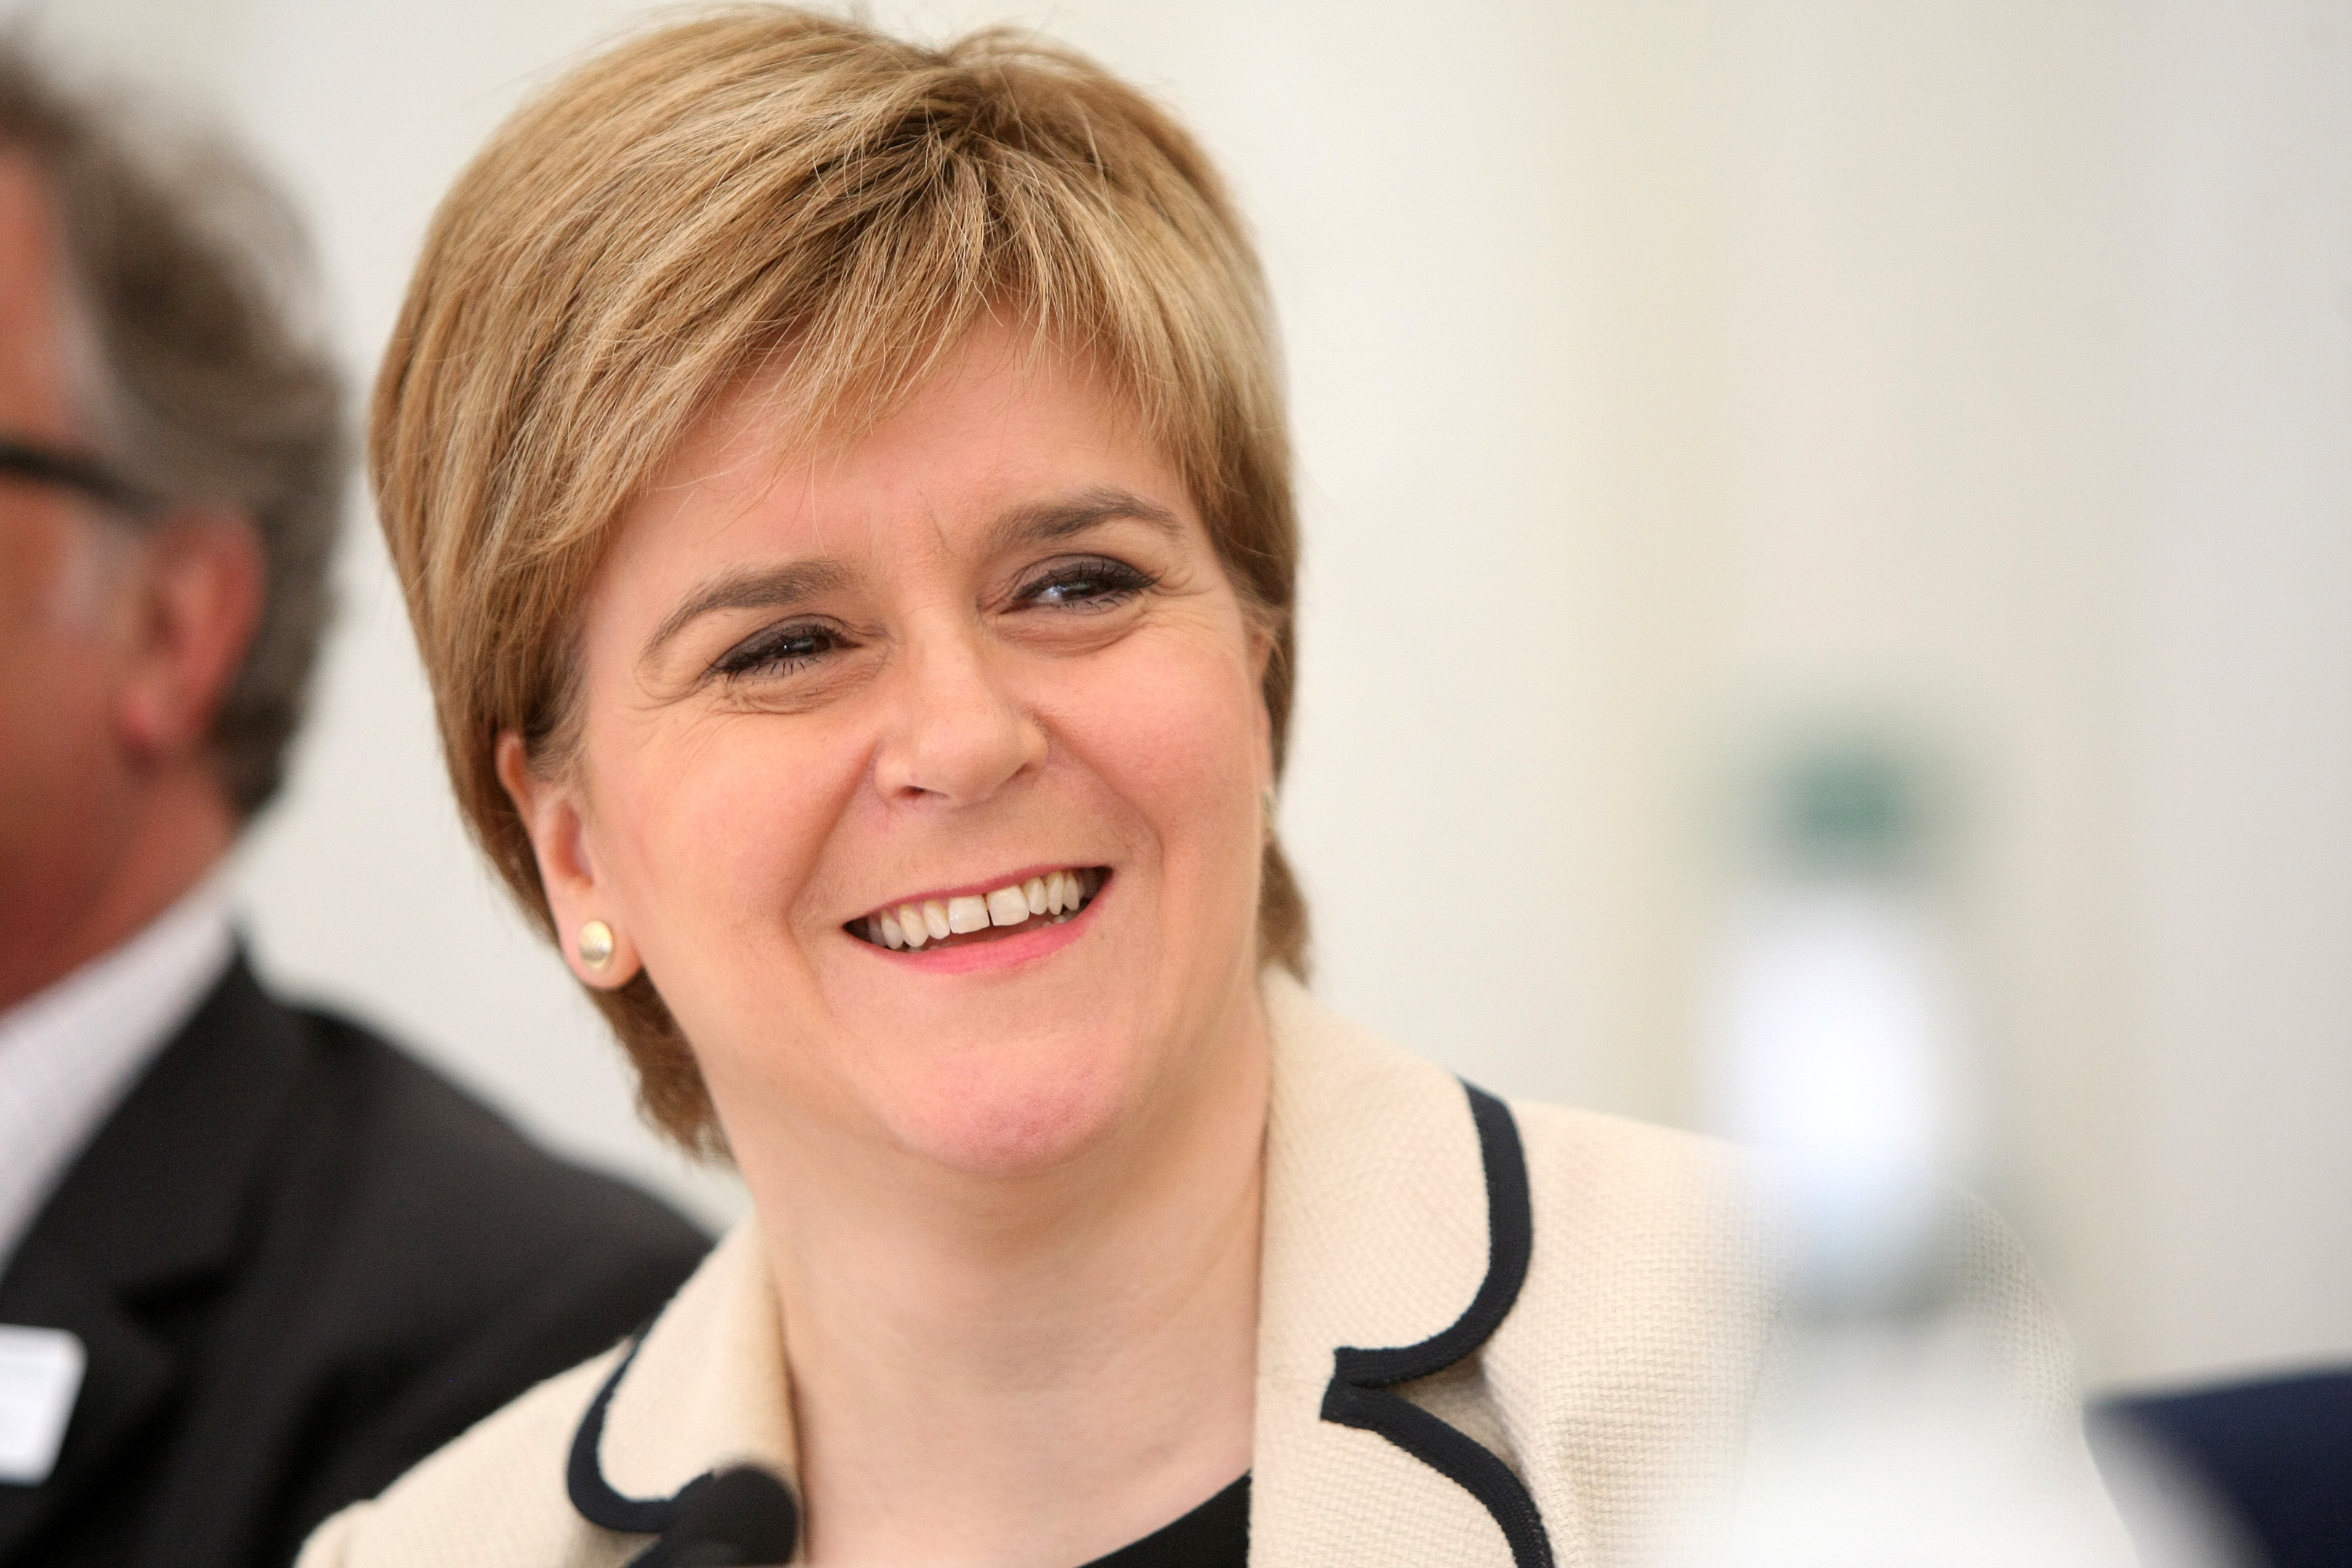 Nicola Sturgeon has been reflecting on her plans for a second independence referendum following the General Election (Kris Miller/DC Thomson)